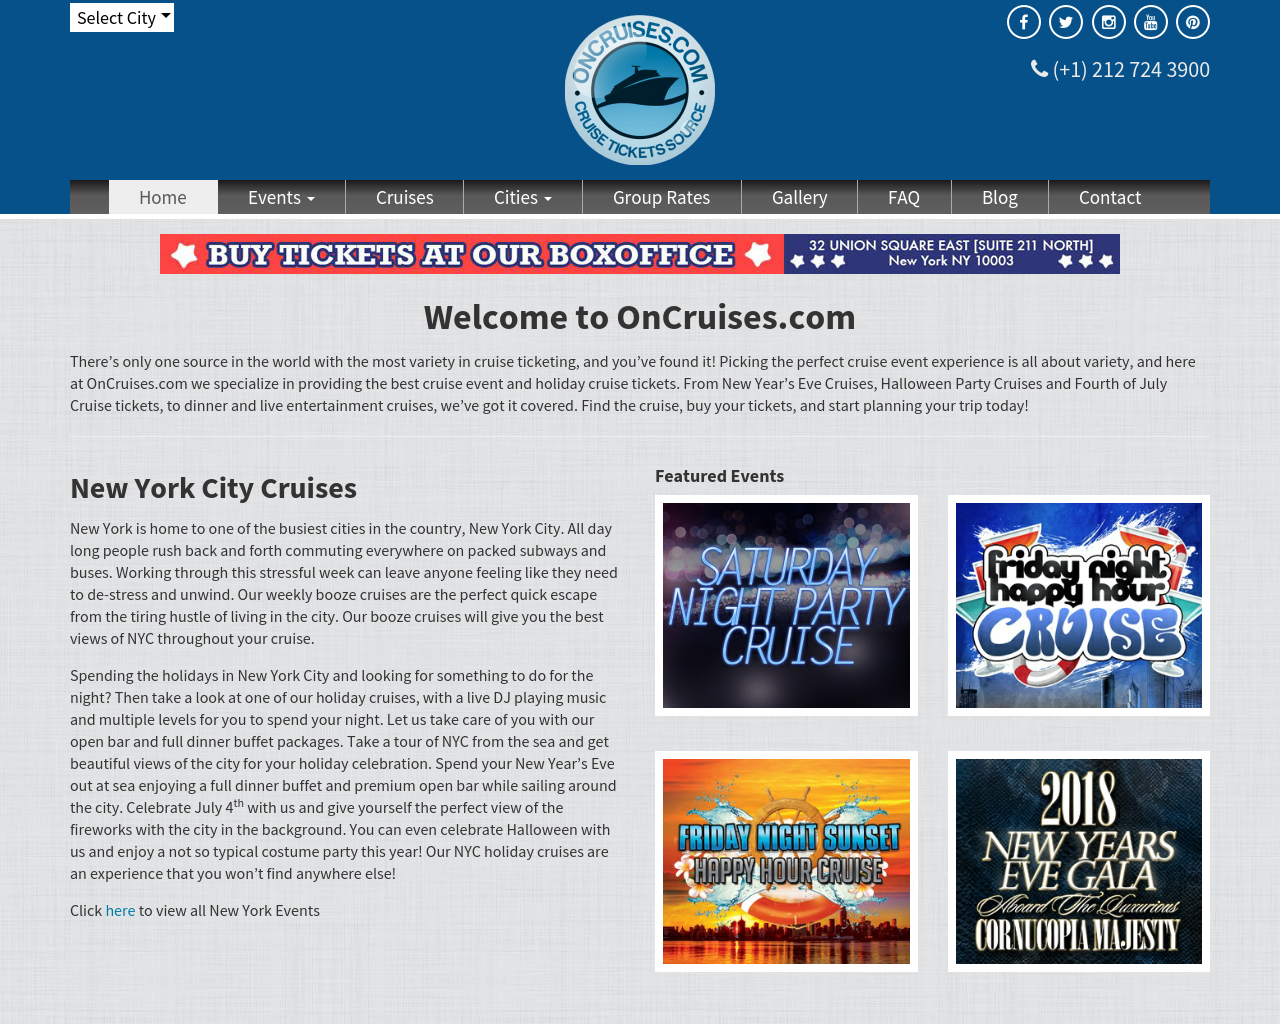 Oncruises.com-Cruise-Tickets-Source-Advertising-Reviews-Pricing